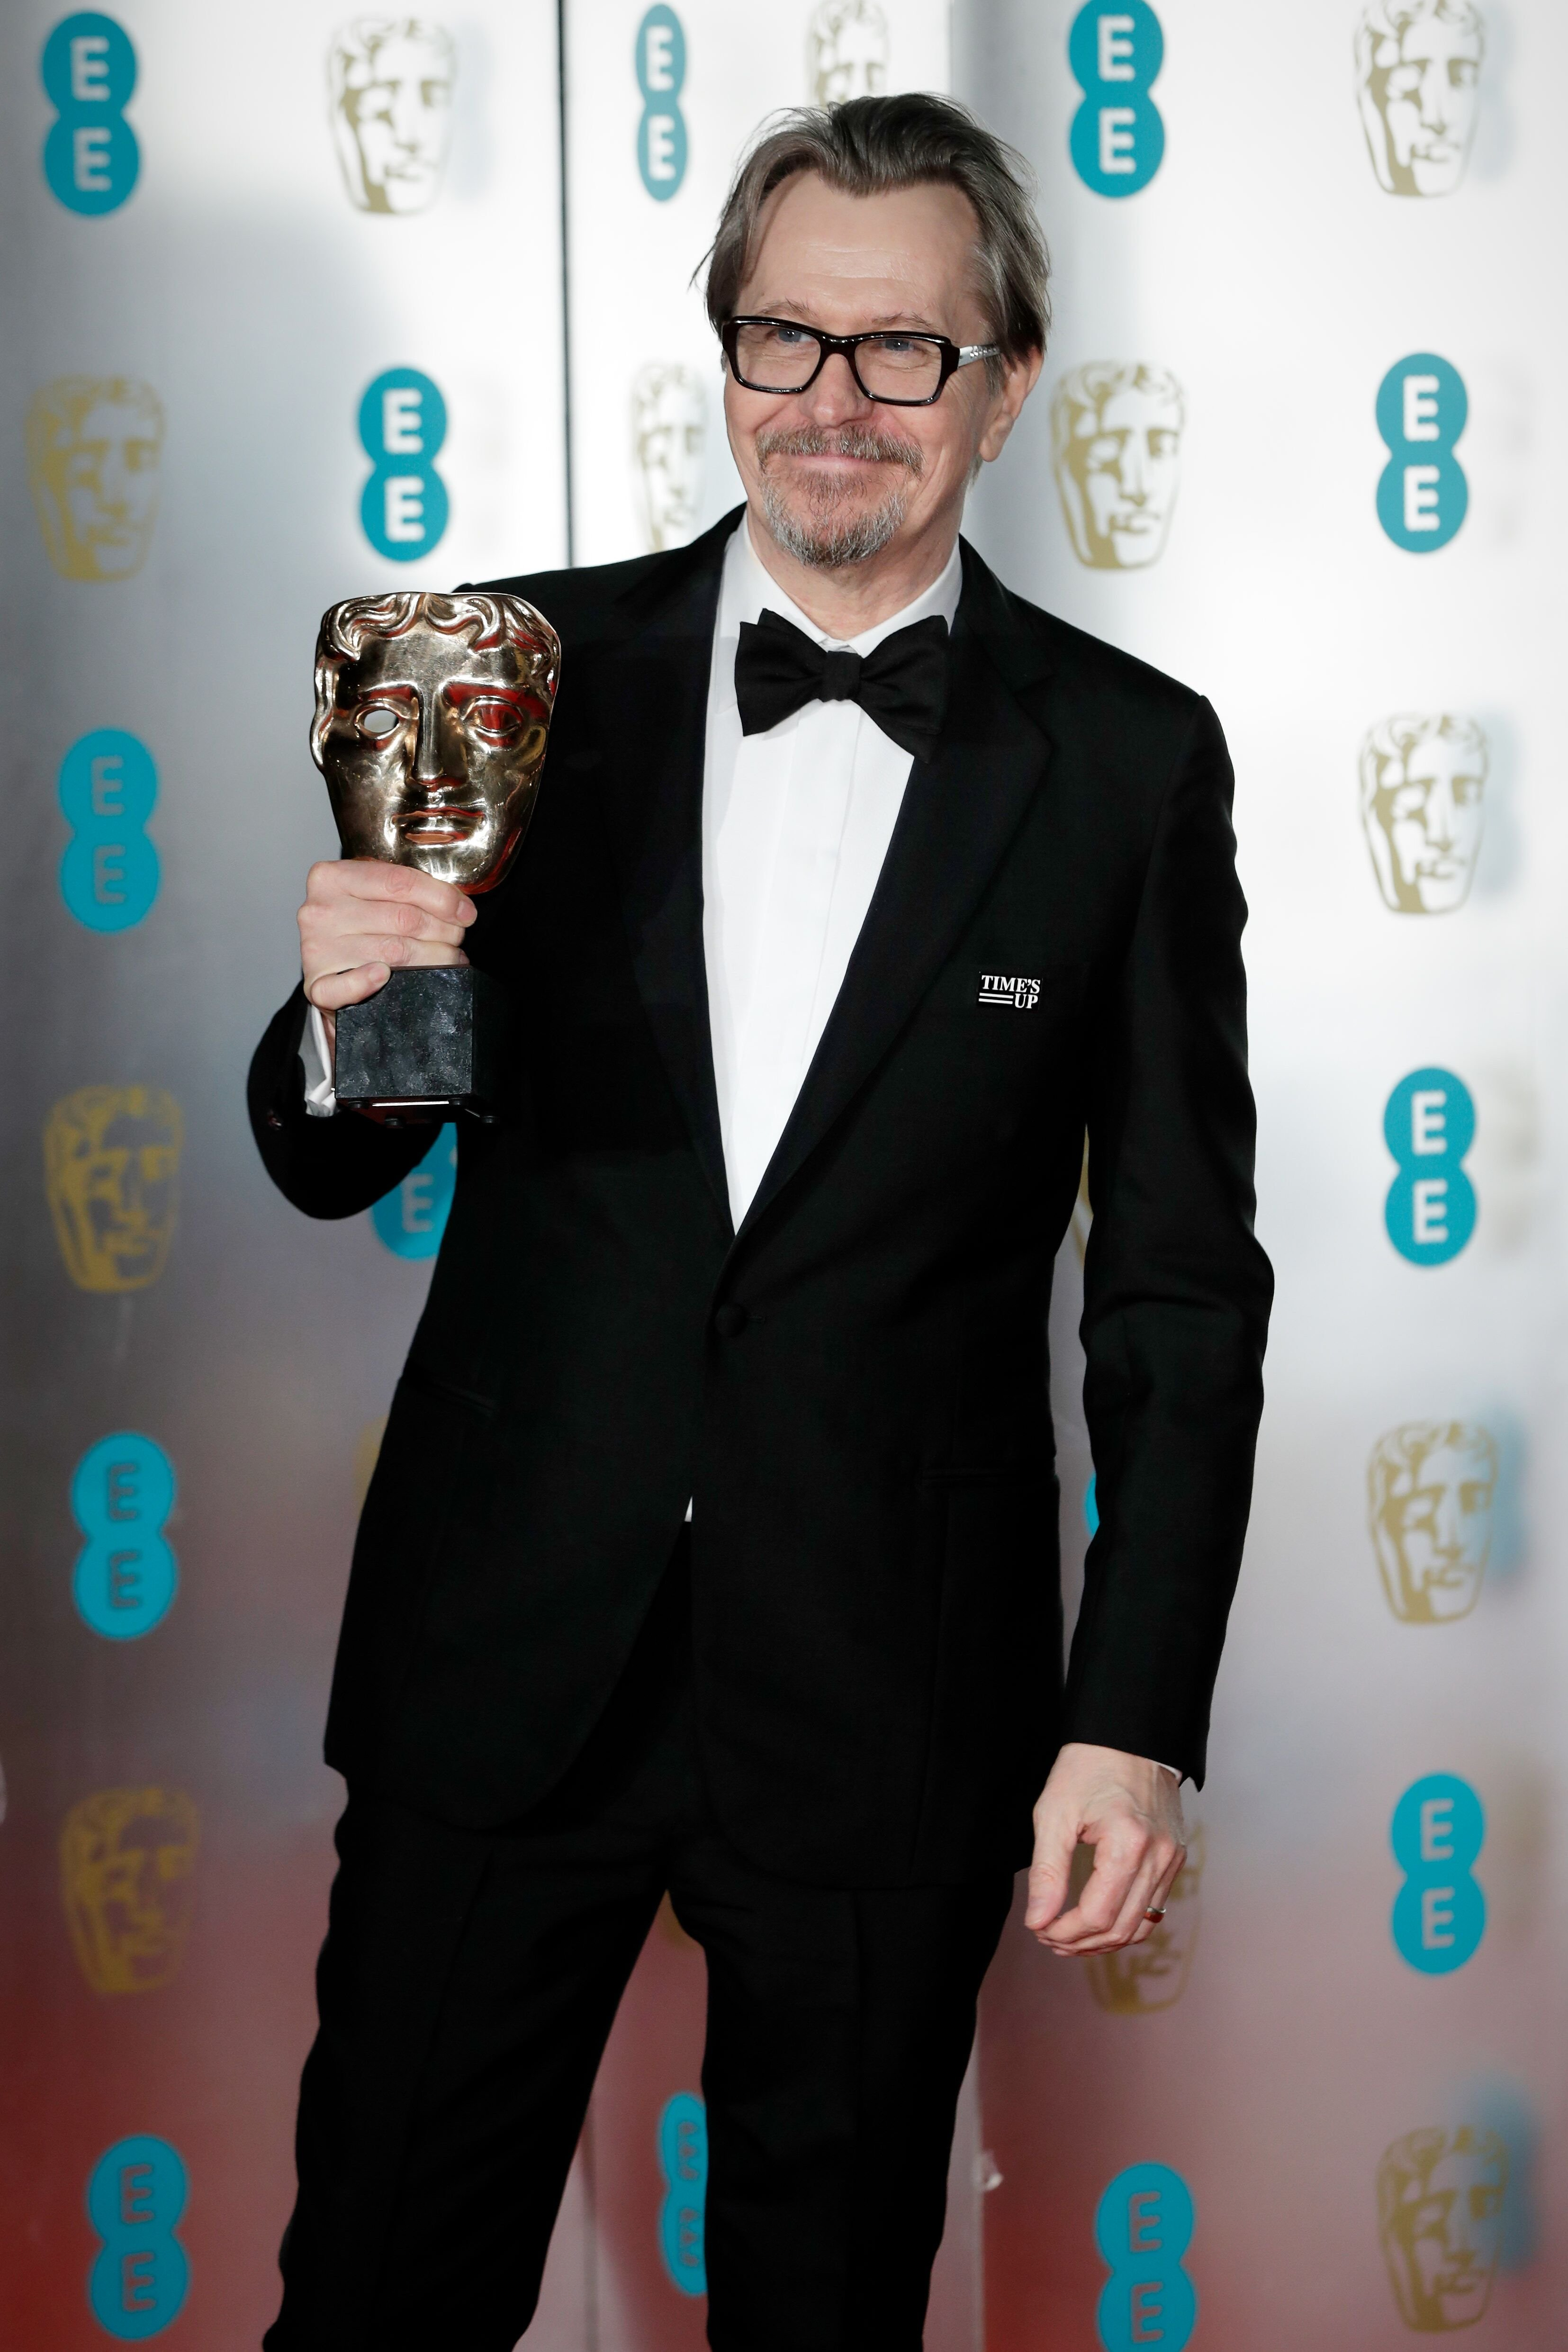 Gary Oldman attends the EE British Academy Film Awards. | Source: Getty Images